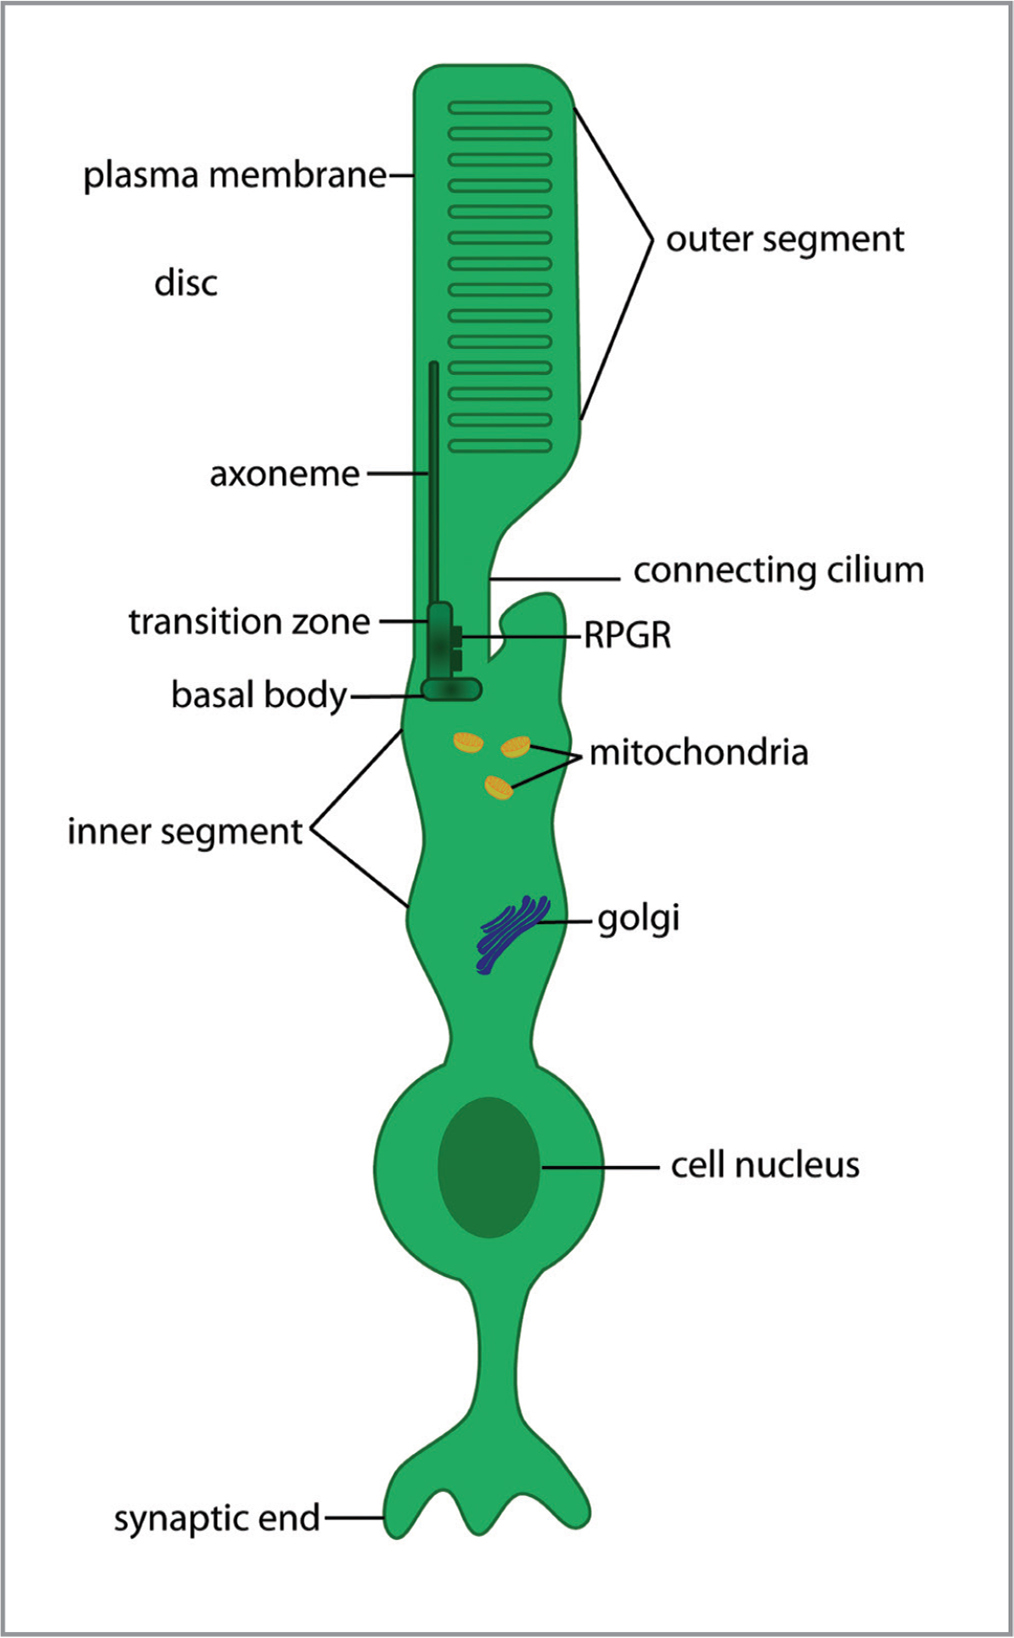 Illustration depicting RPGR localization within rod photoreceptors. Schematic illustration depicting sub-cellular organization of a rod photoreceptor. The outer segment is the light-sensing portion of the cell and is directly adjacent to the retinal pigment epithelium. RPGR is localized predominantly in the photoreceptor cilium and is key for transporting proteins involved in phototransduction to the outer segments.